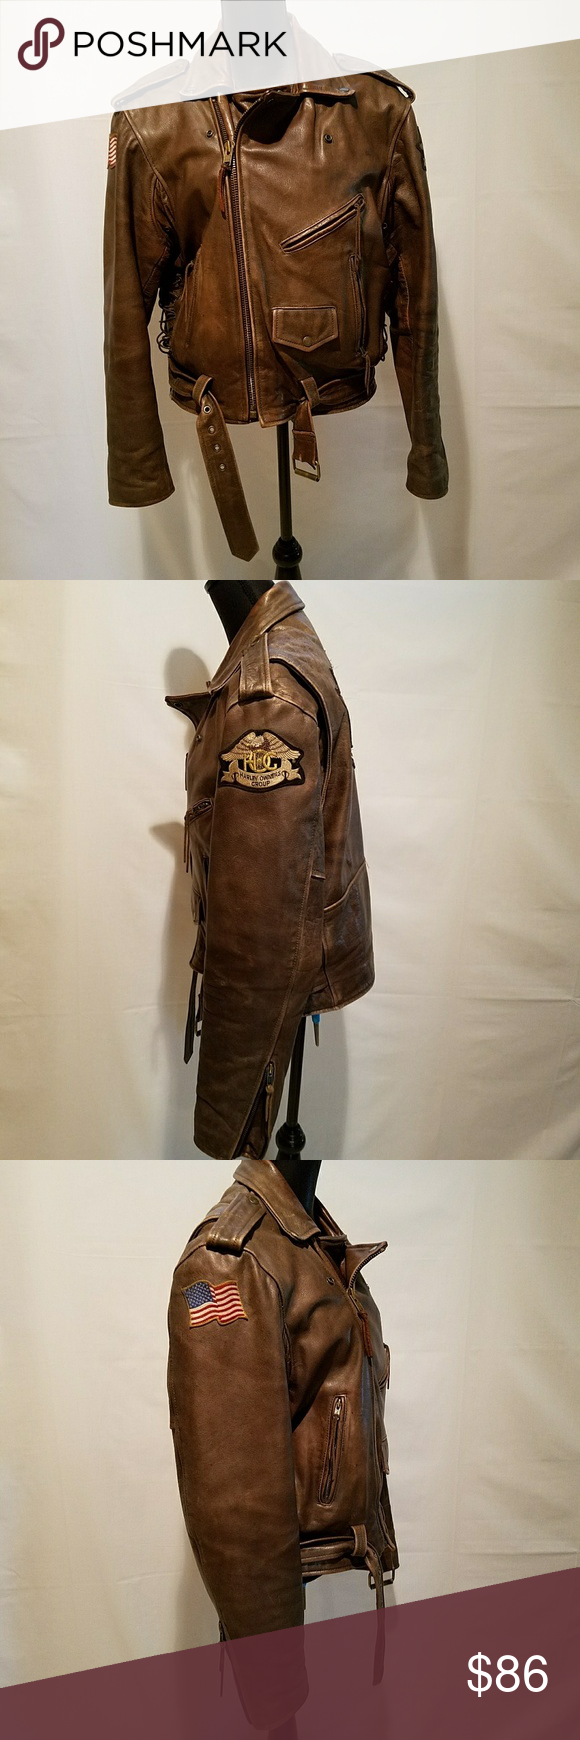 Classic Vintage Patched Leather Moto Jacket Brown